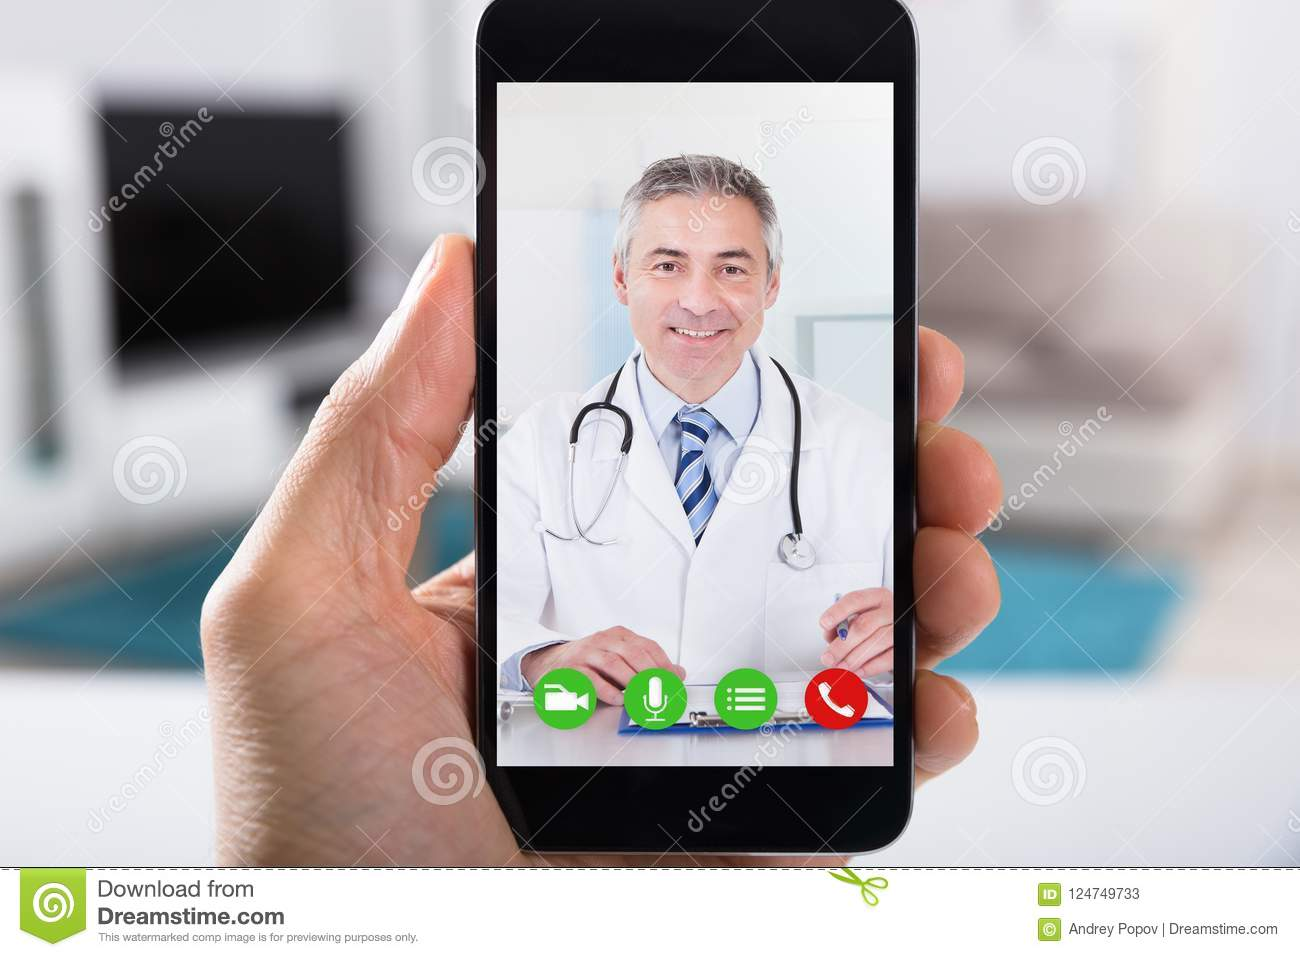 Person Video Conferencing With Doctor en Smartphone